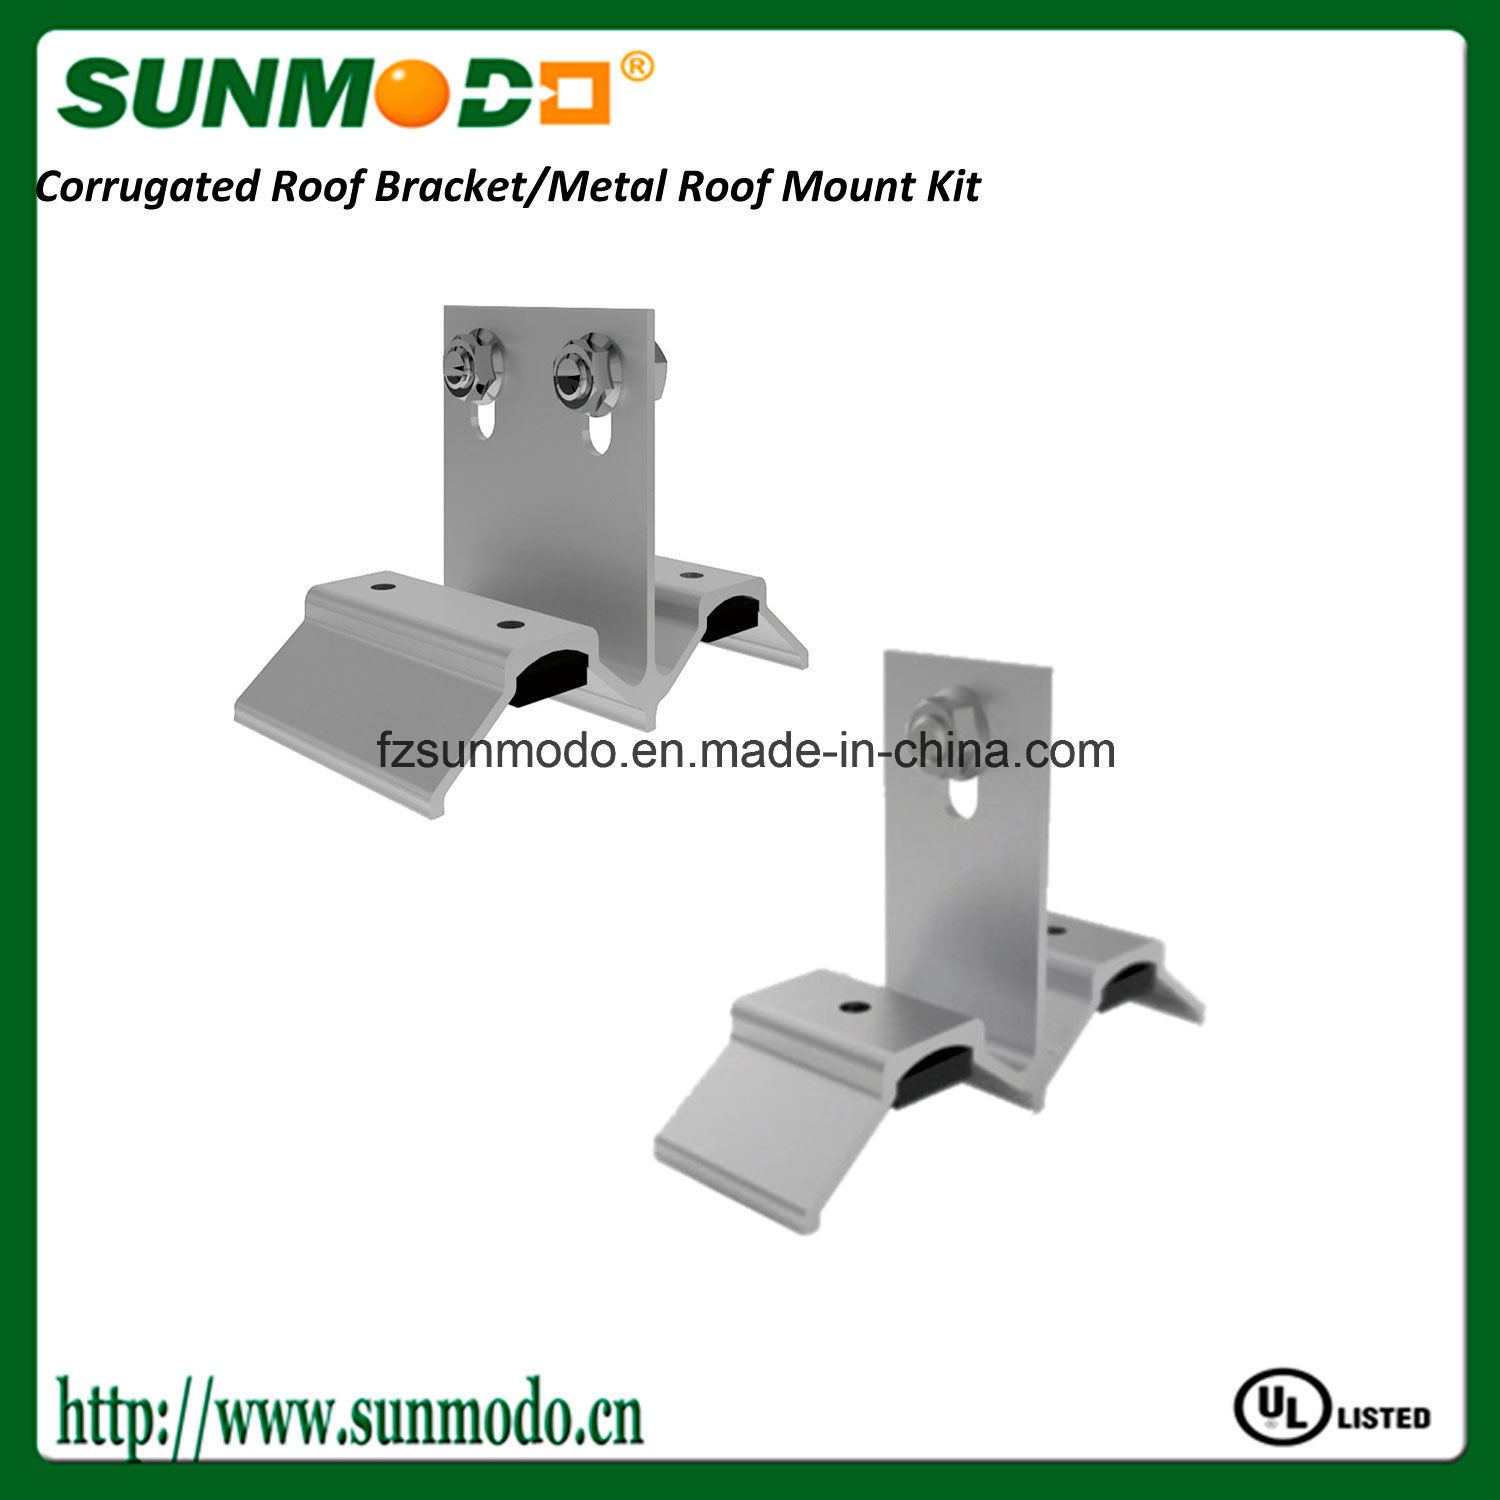 Corrugated Metal Roof Solar Mount Kit with EPDM Rubber Gaskets